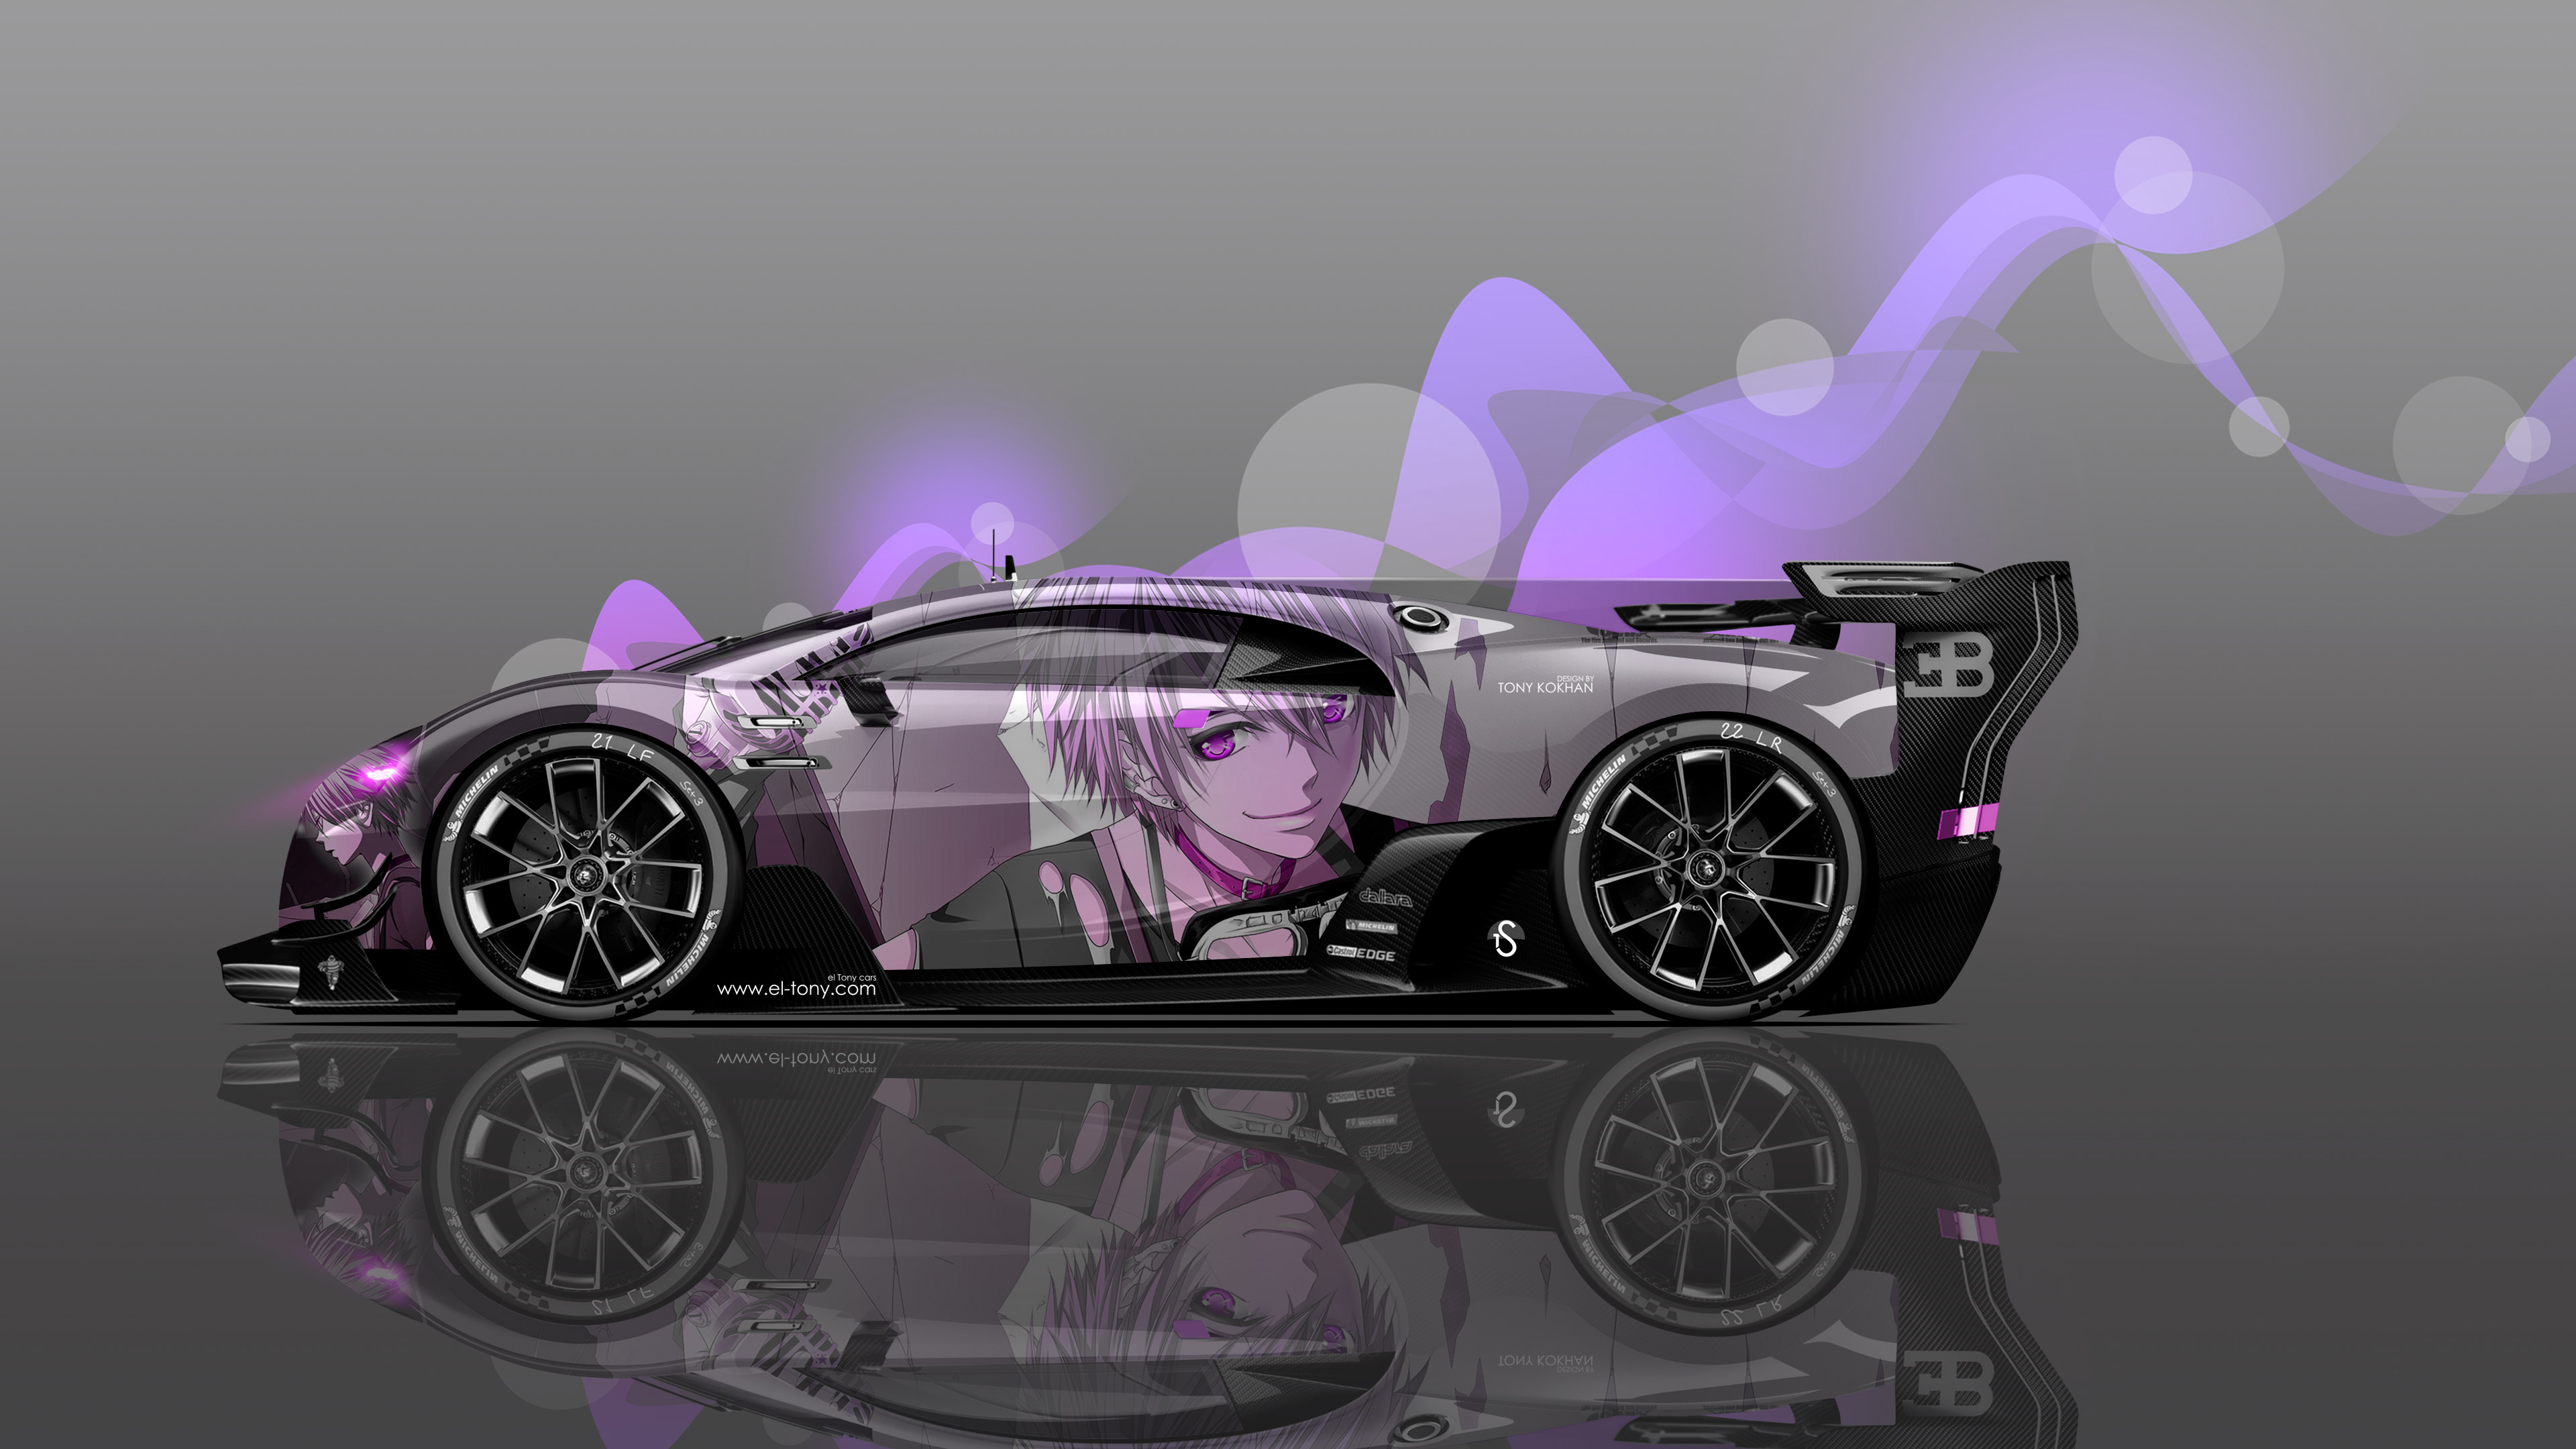 Bugatti Vision GT Side Anime Boy Aerography Car 2016 Wallpapers 4K